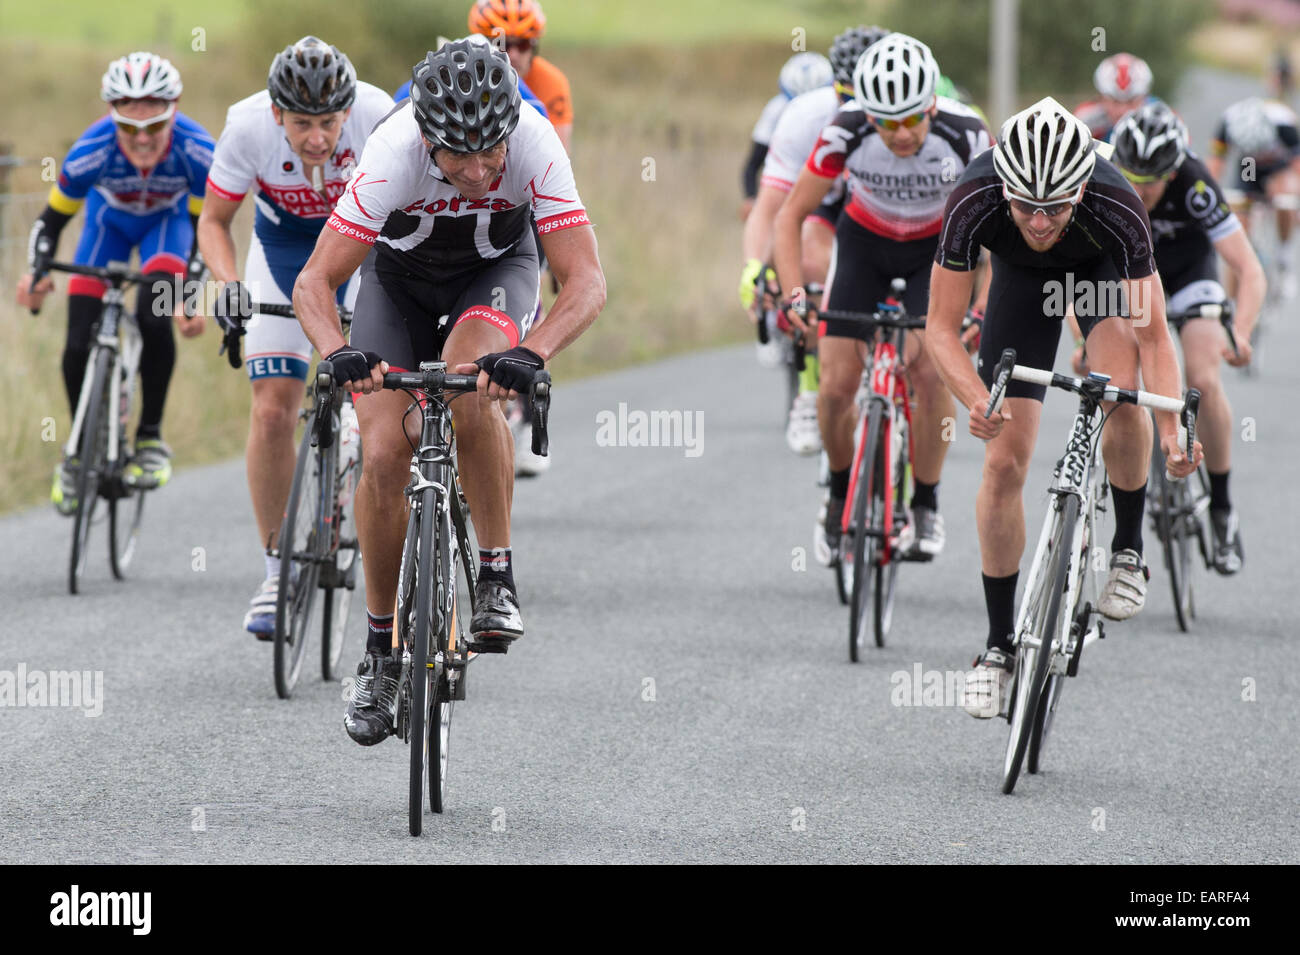 Professional cyclists sprinting for the line in the 'Tour of the Mining Valleys' cycle race Ceredigion Wales - Stock Image